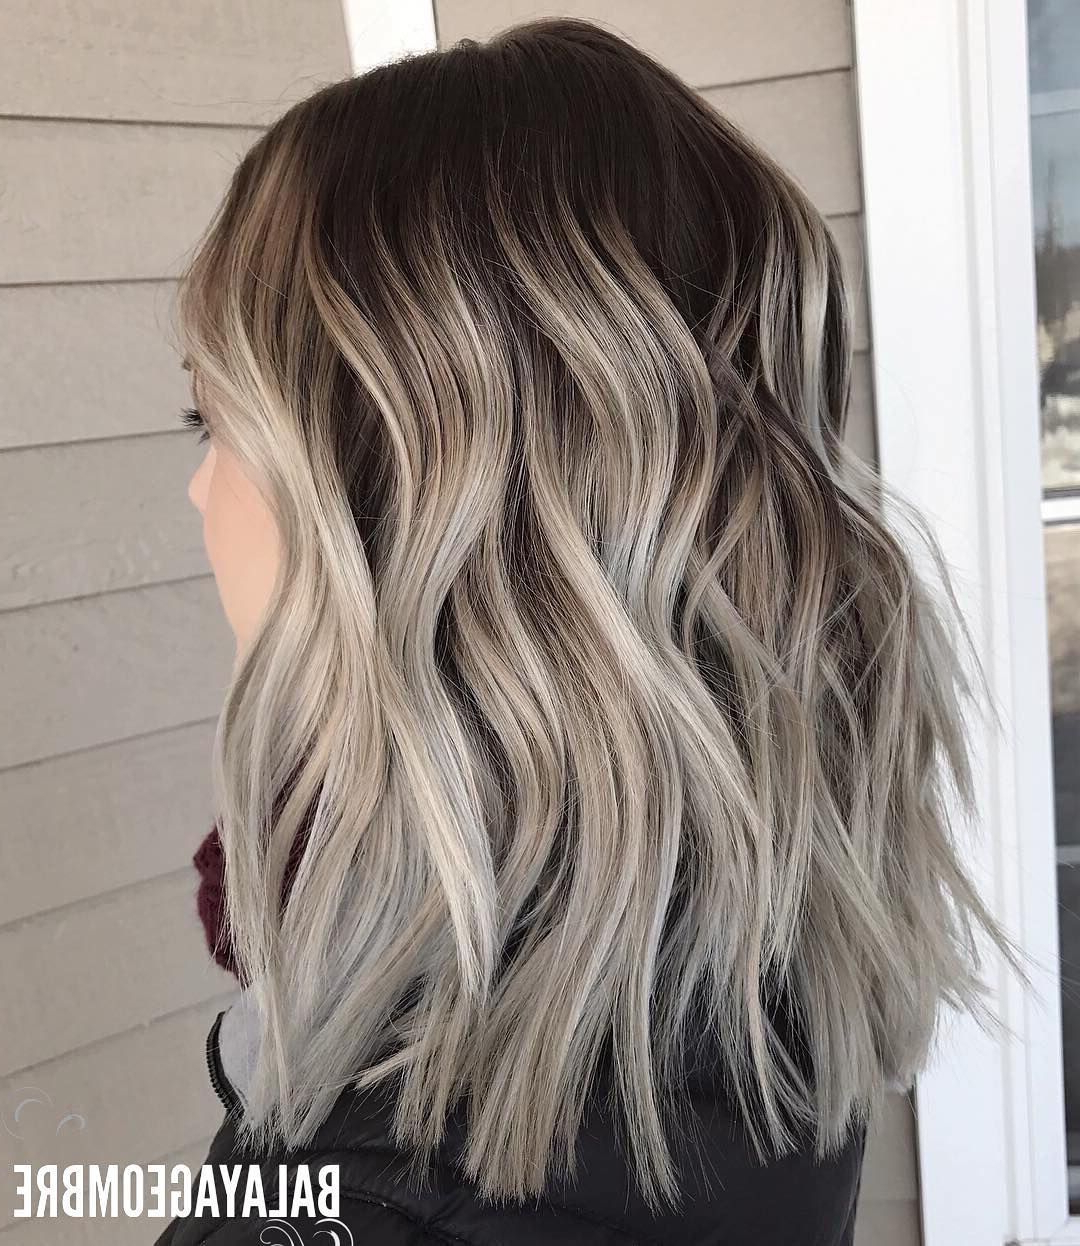 10 Medium Layered Hairstyles In Beige, Brown & Ash Blonde With Regard To Well Liked Mid Length Layered Ash Blonde Hairstyles (Gallery 2 of 20)